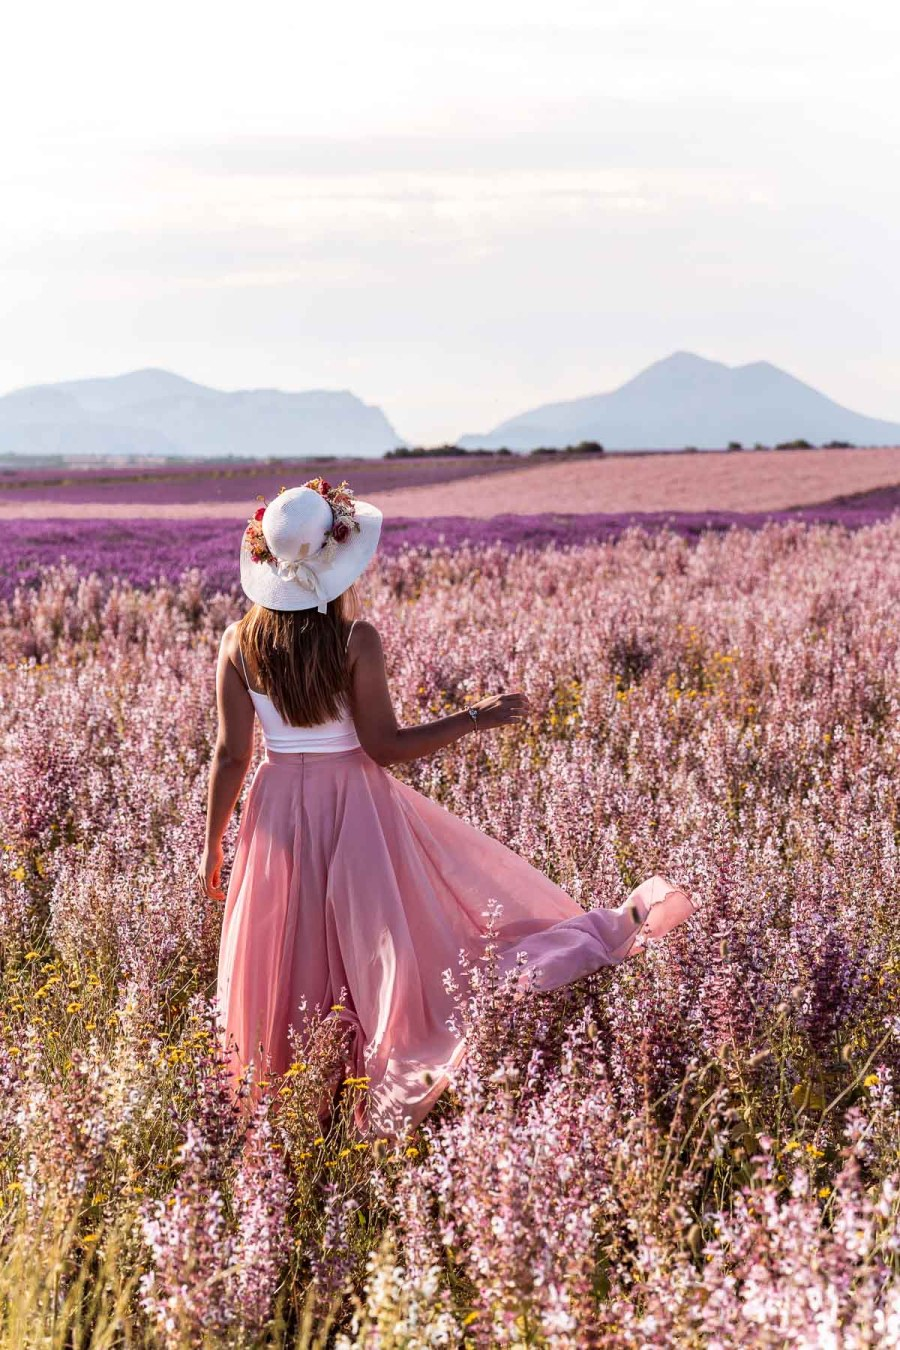 Girl in a pink skirt standing in the middle of a sage field in Provence